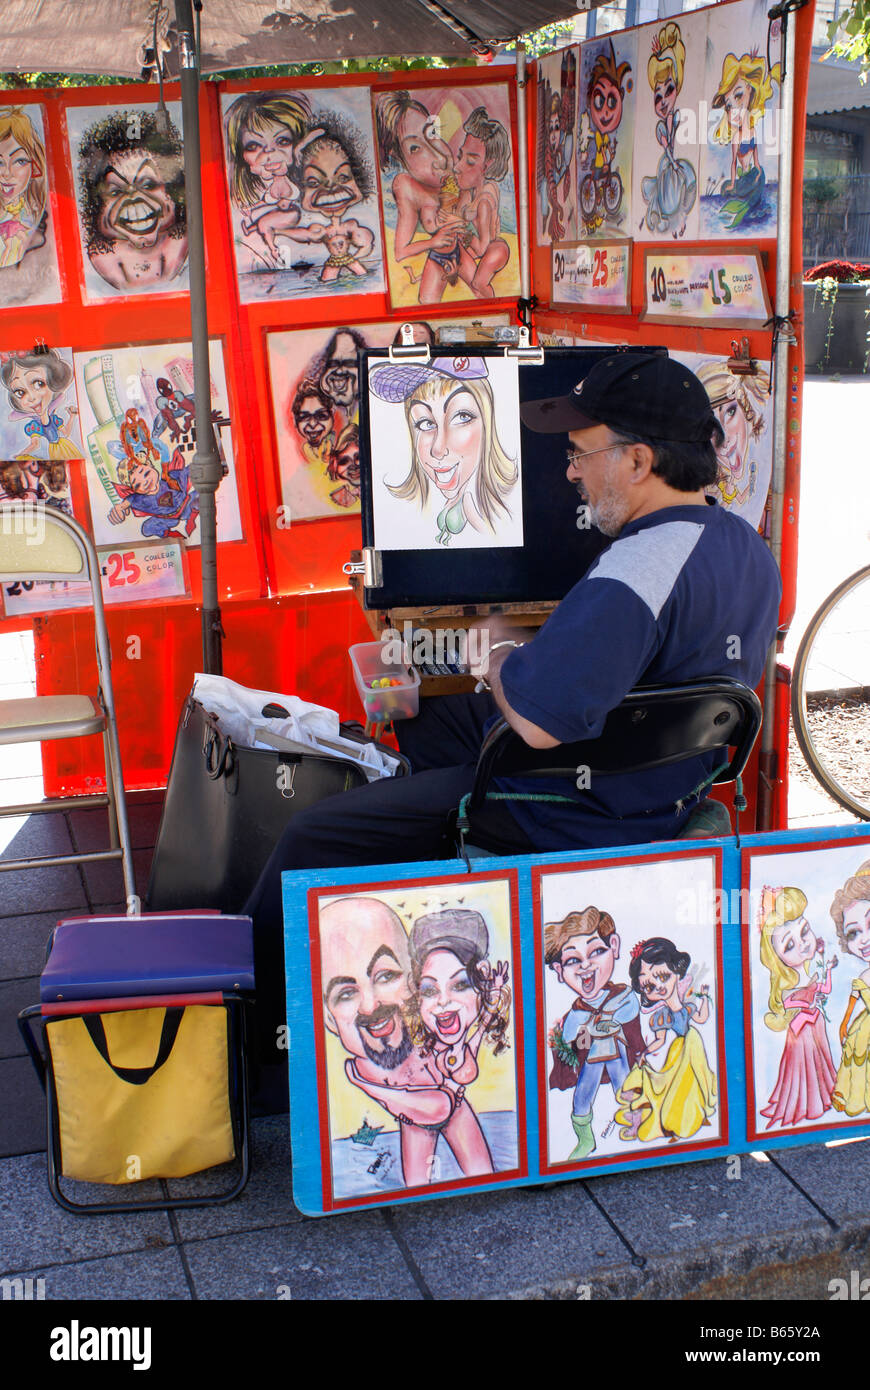 Sidewalk artist selling his caricatures in Place Jacques Cartier, Old Montreal, Quebec, Canada - Stock Image